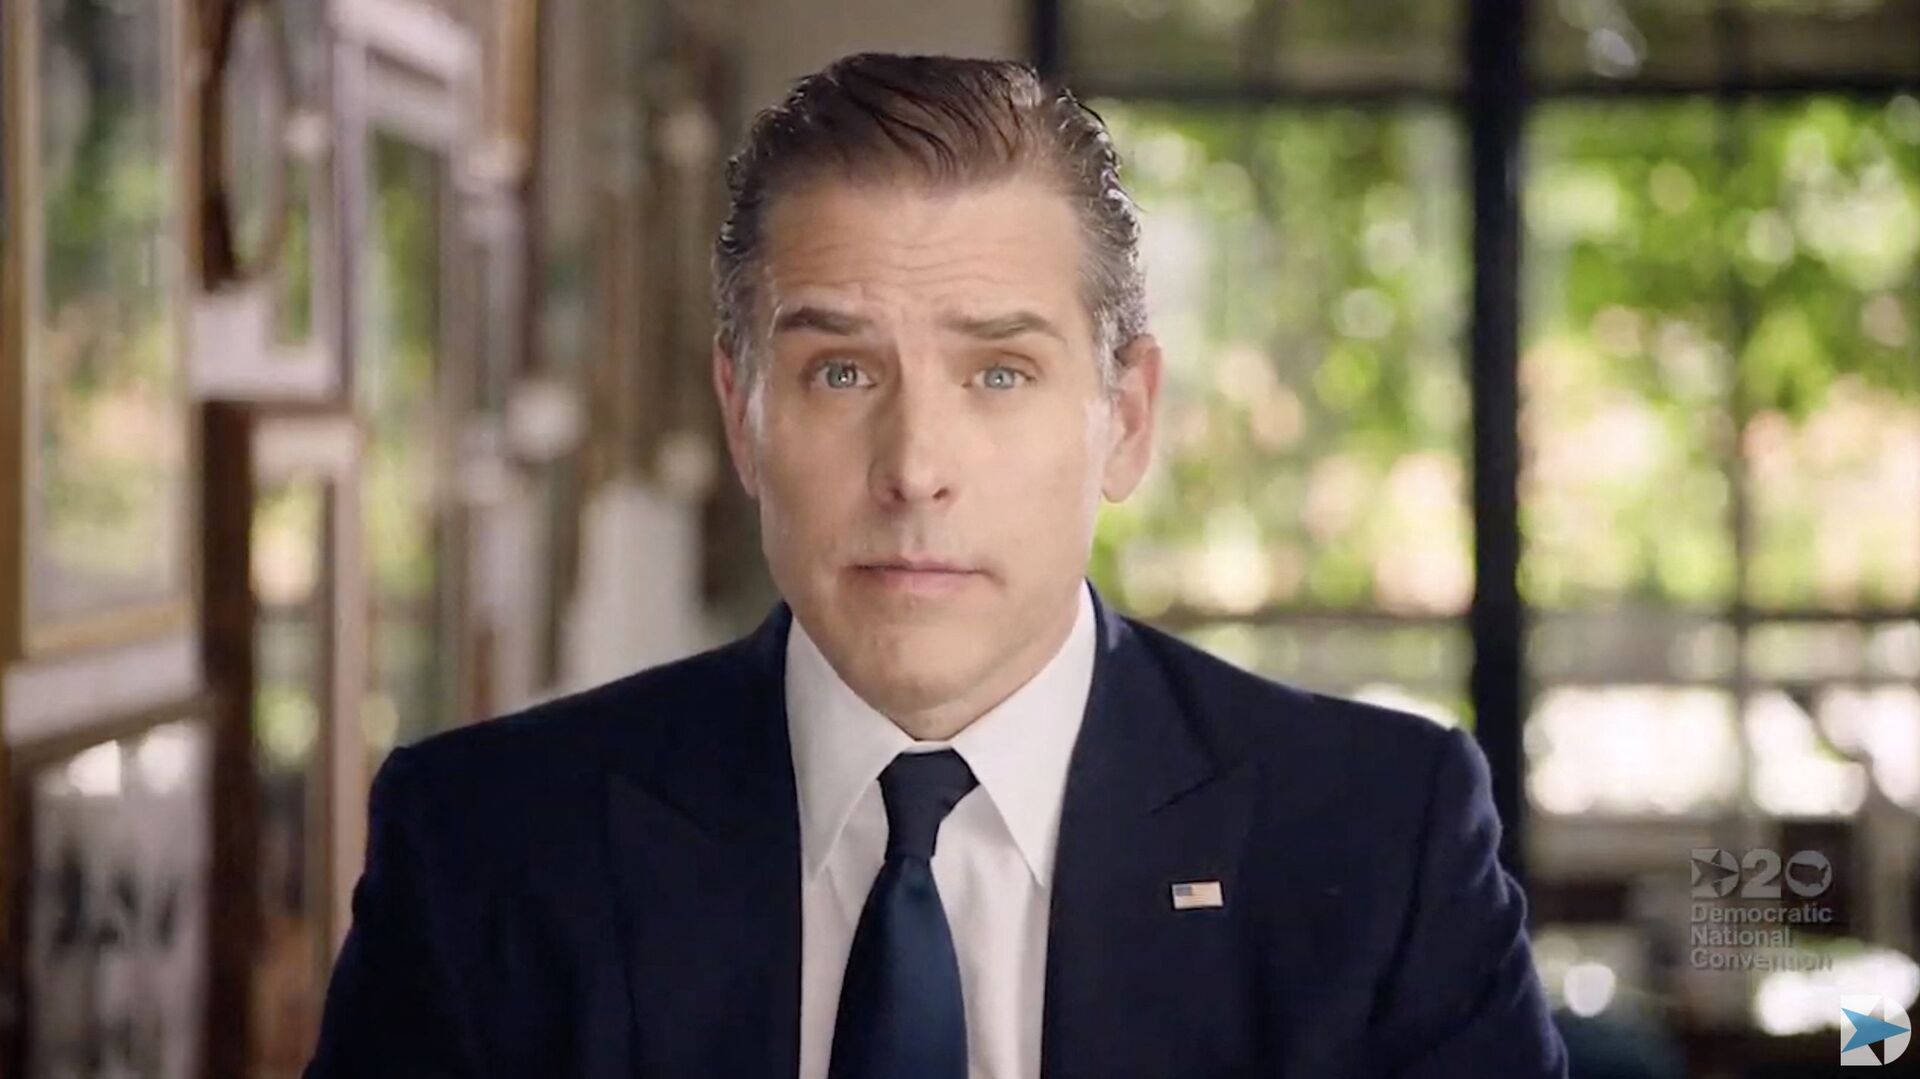 (FILES) In this file photo video grab made on August 20, 2020 from the online broadcast of the Democratic National Convention, being held virtually amid the novel coronavirus pandemic, shows former vice-president and Democratic presidential nominee Joe Biden's son Hunter Biden speaking during the last day of the convention. - Sputnik International, 1920, 23.07.2021